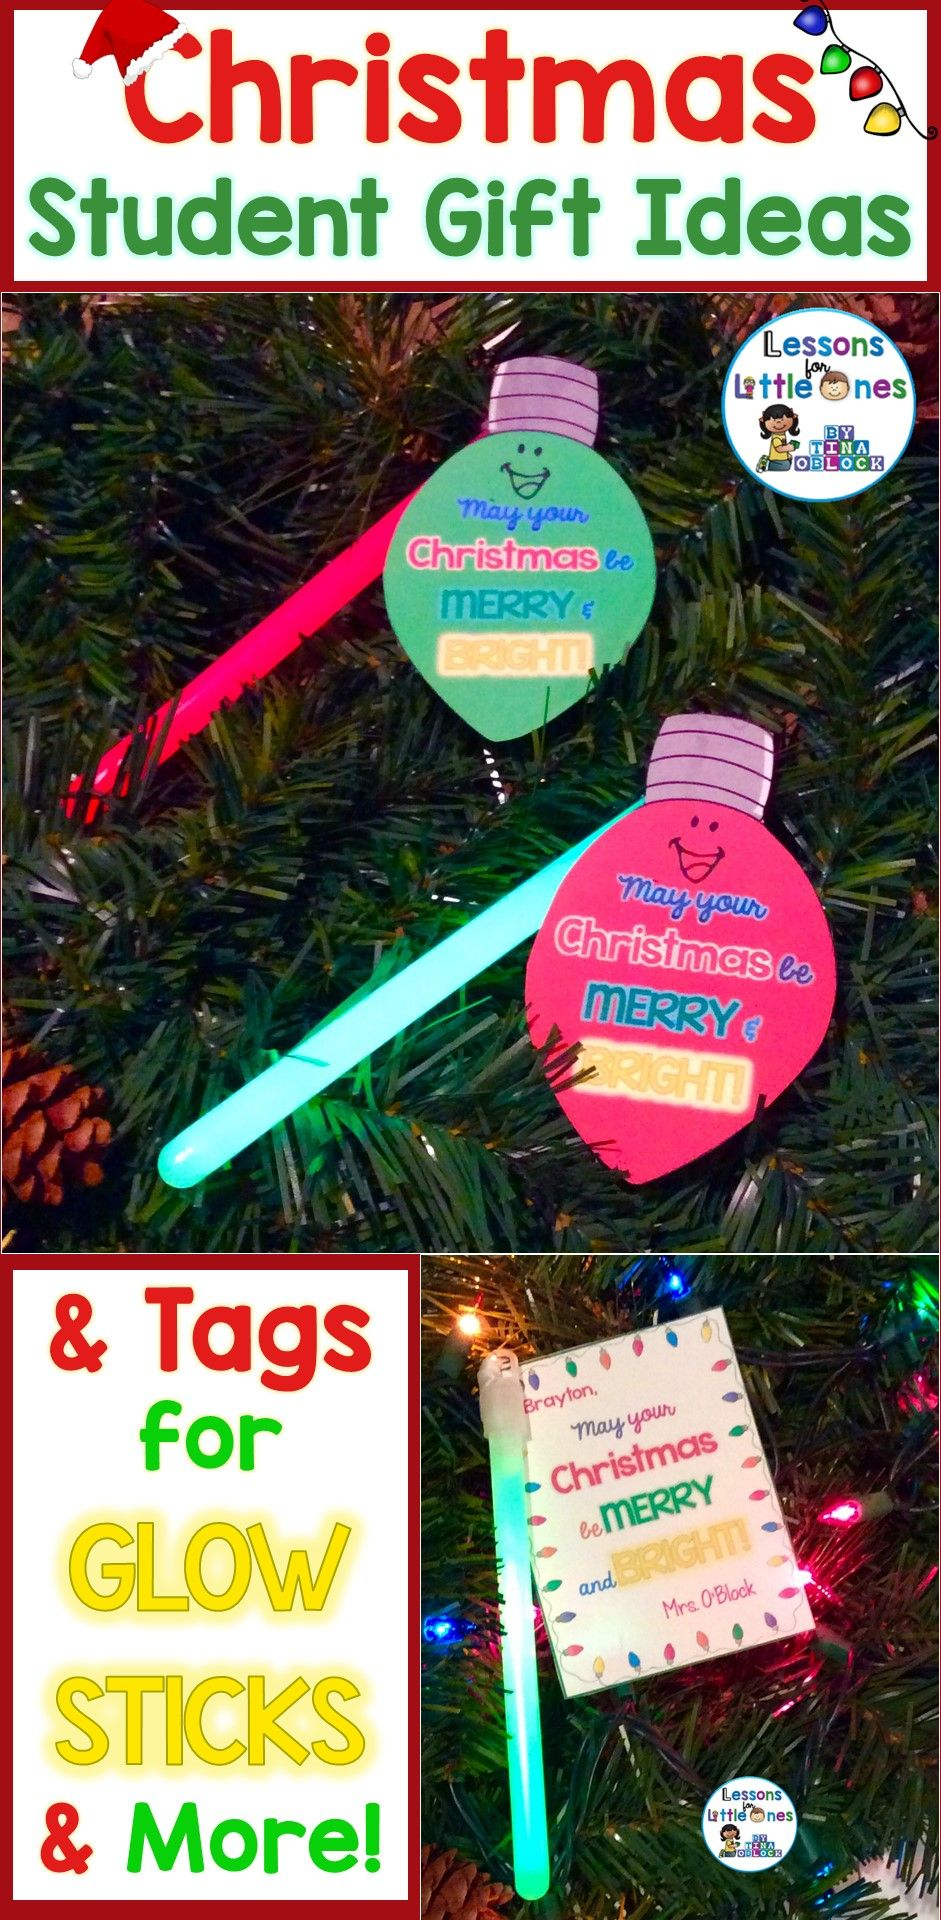 Christmas Student Gift Ideas & Gift Tags | Student Rewards, Student ...